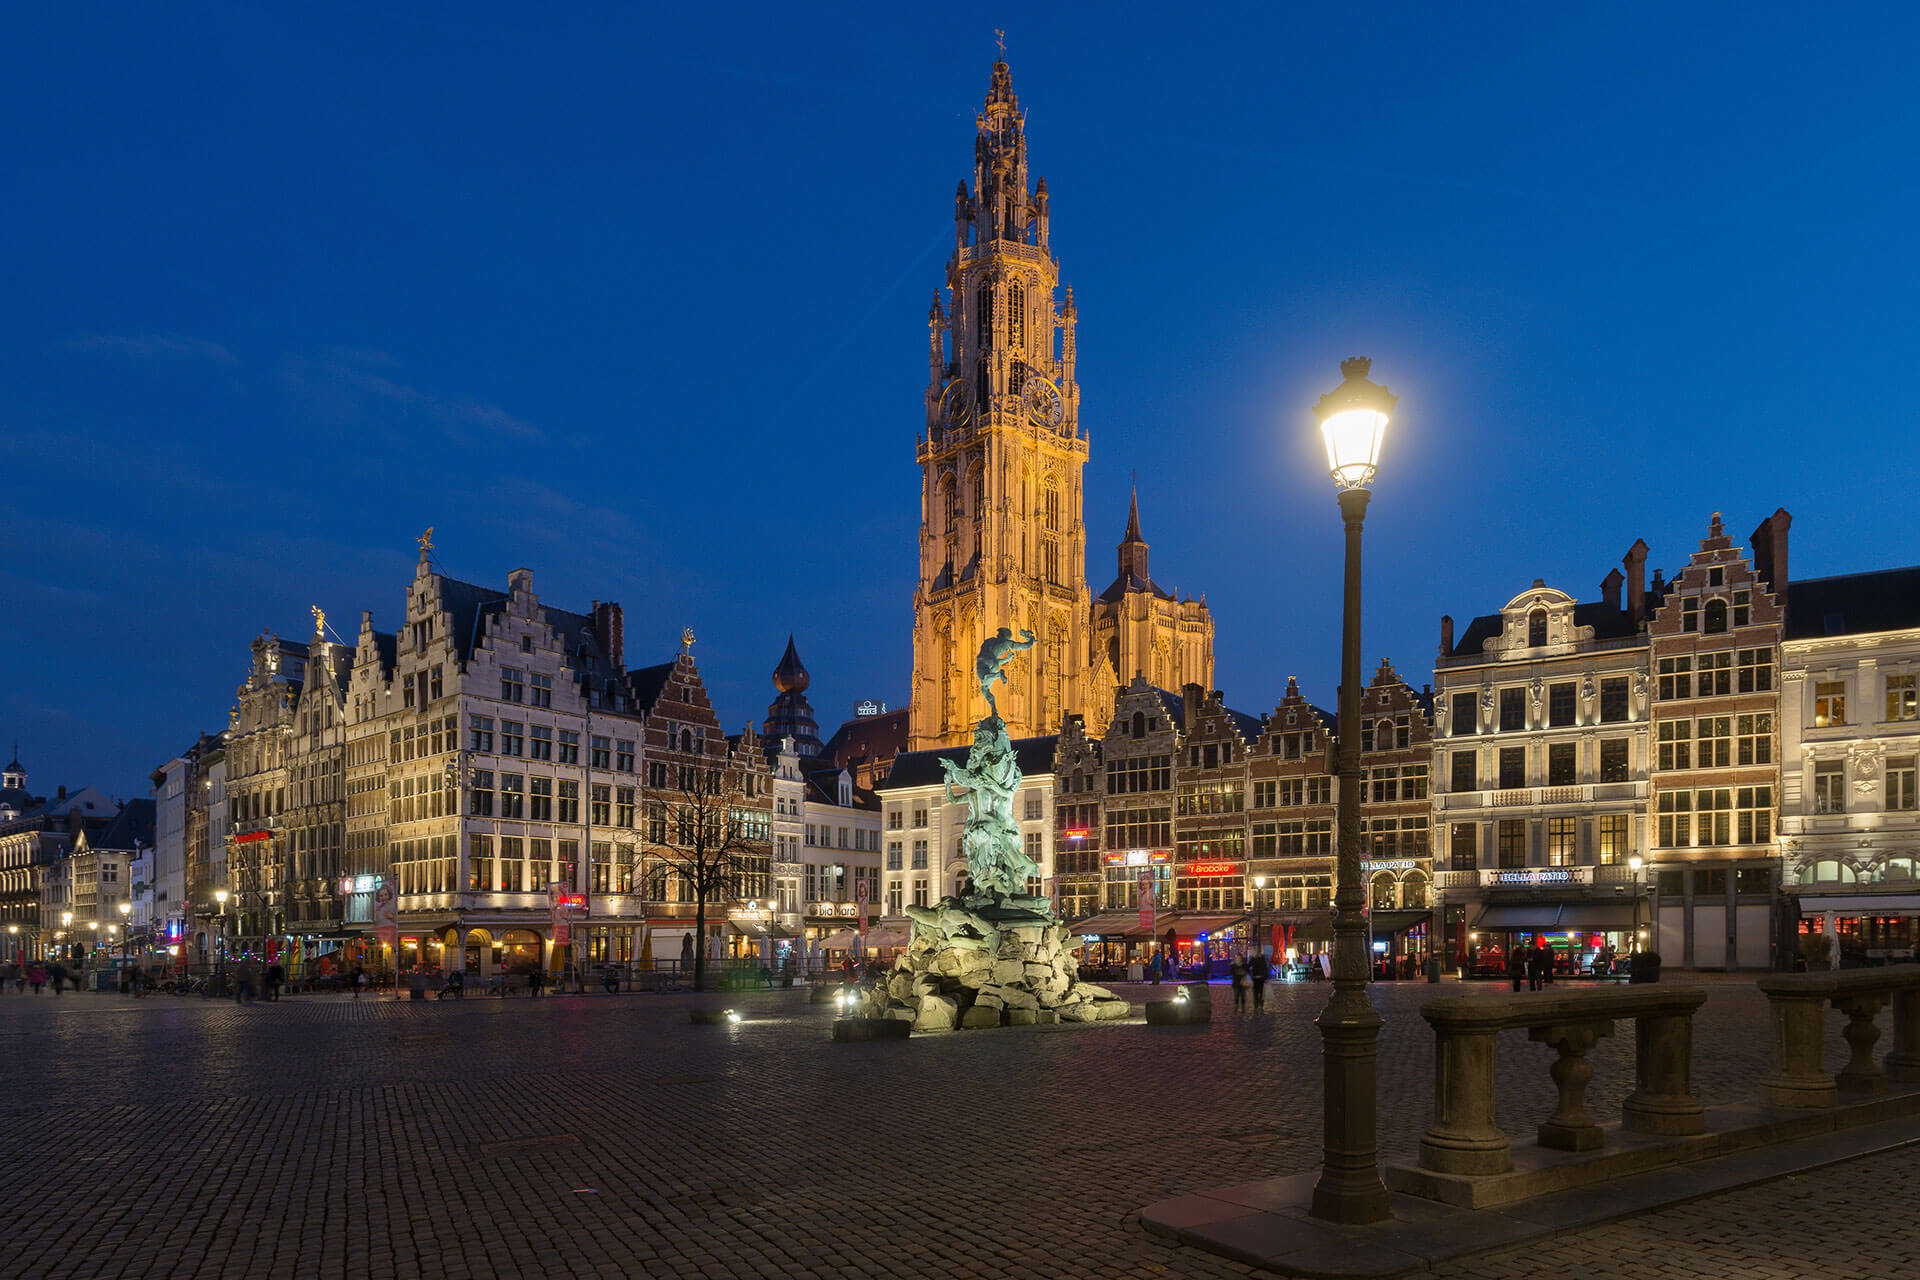 The nocturnal identity of Grote Markt in Antwerp has been transformed thanks to a new lighting scheme